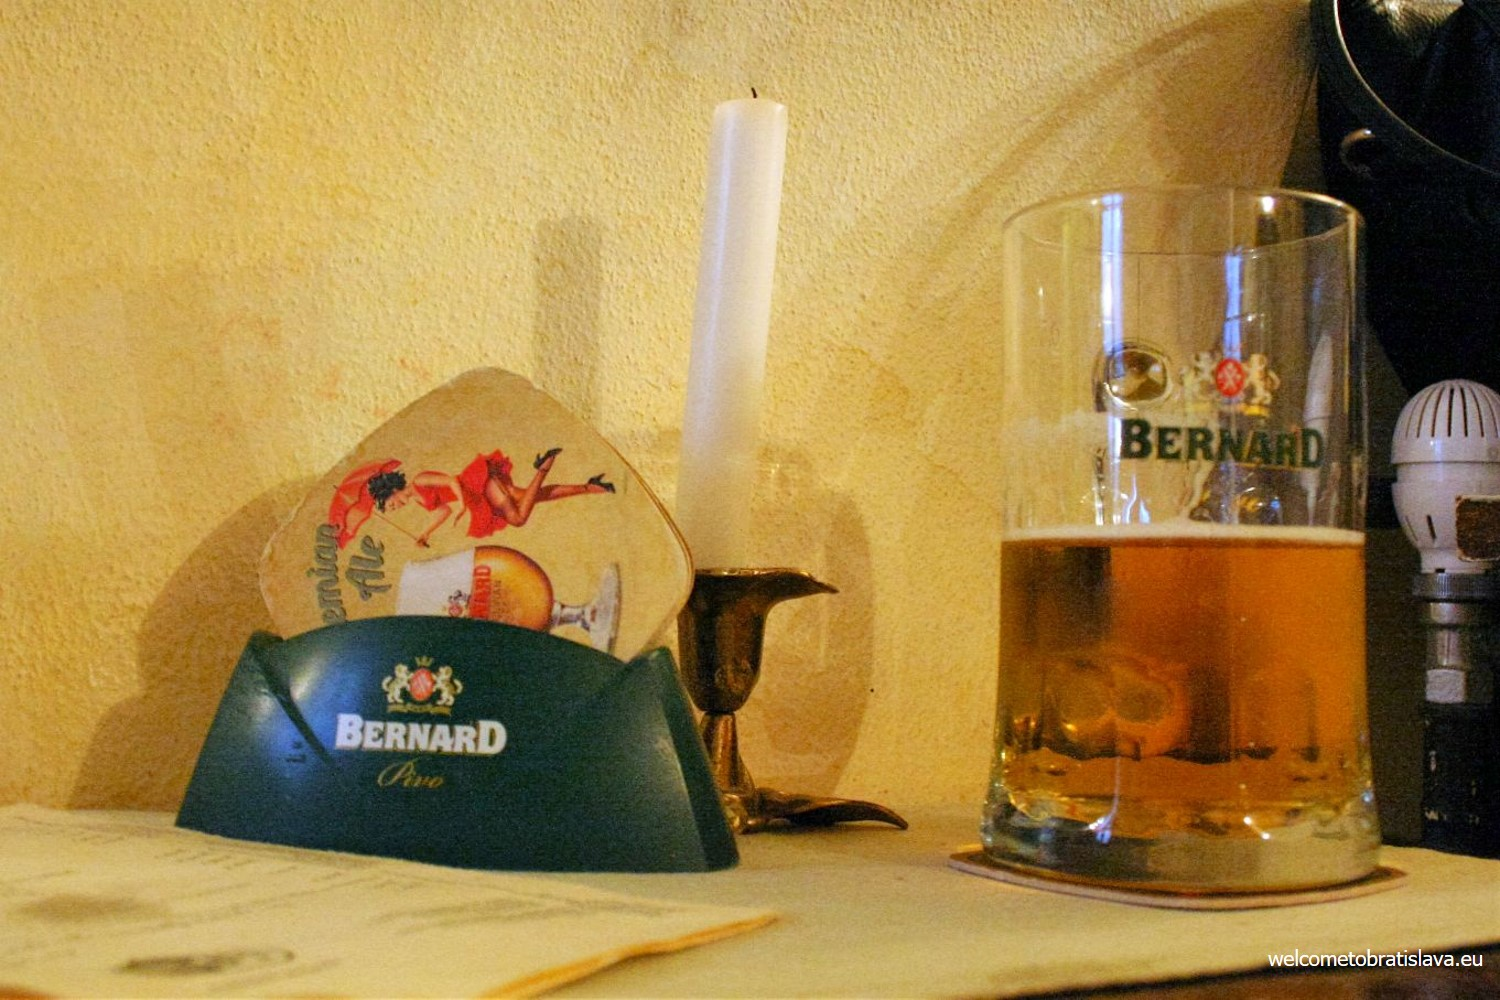 They are offering popular Czech family beer Bernard and you can choose from drafted light 10° classic lager, stronger 14°, a bit more distinctive Bohemian Ale or special dark 12°